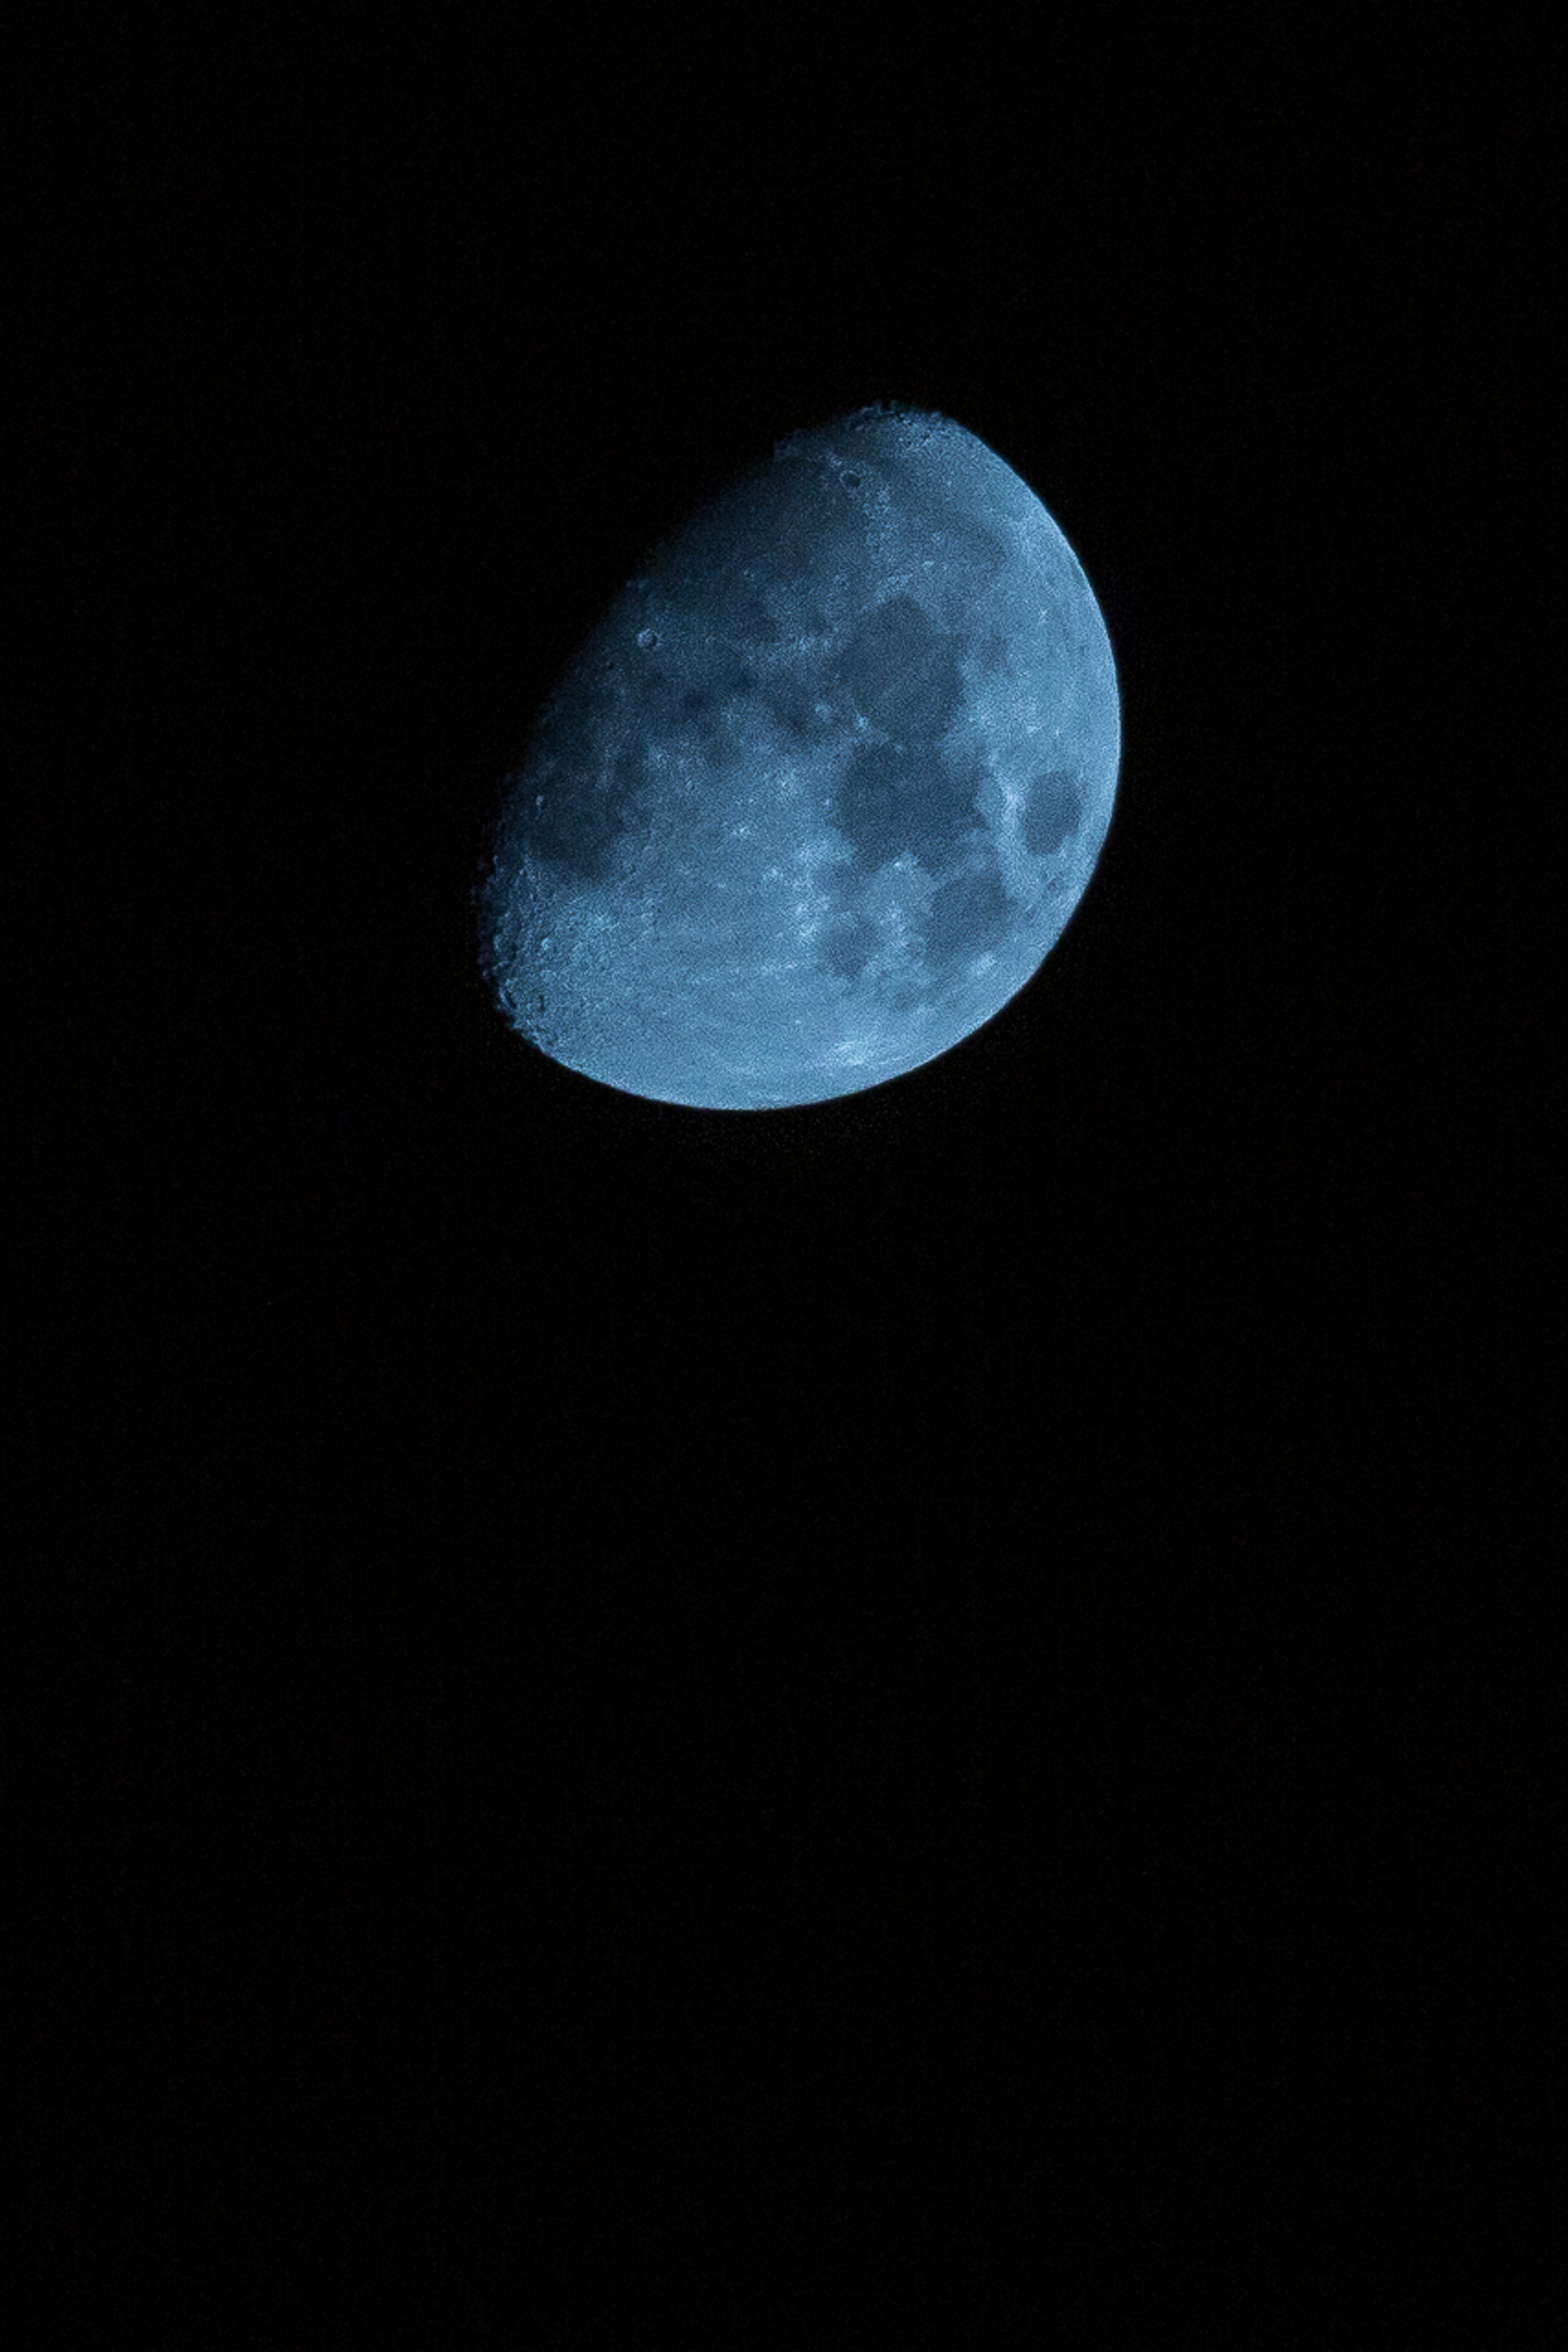 More of the Moon